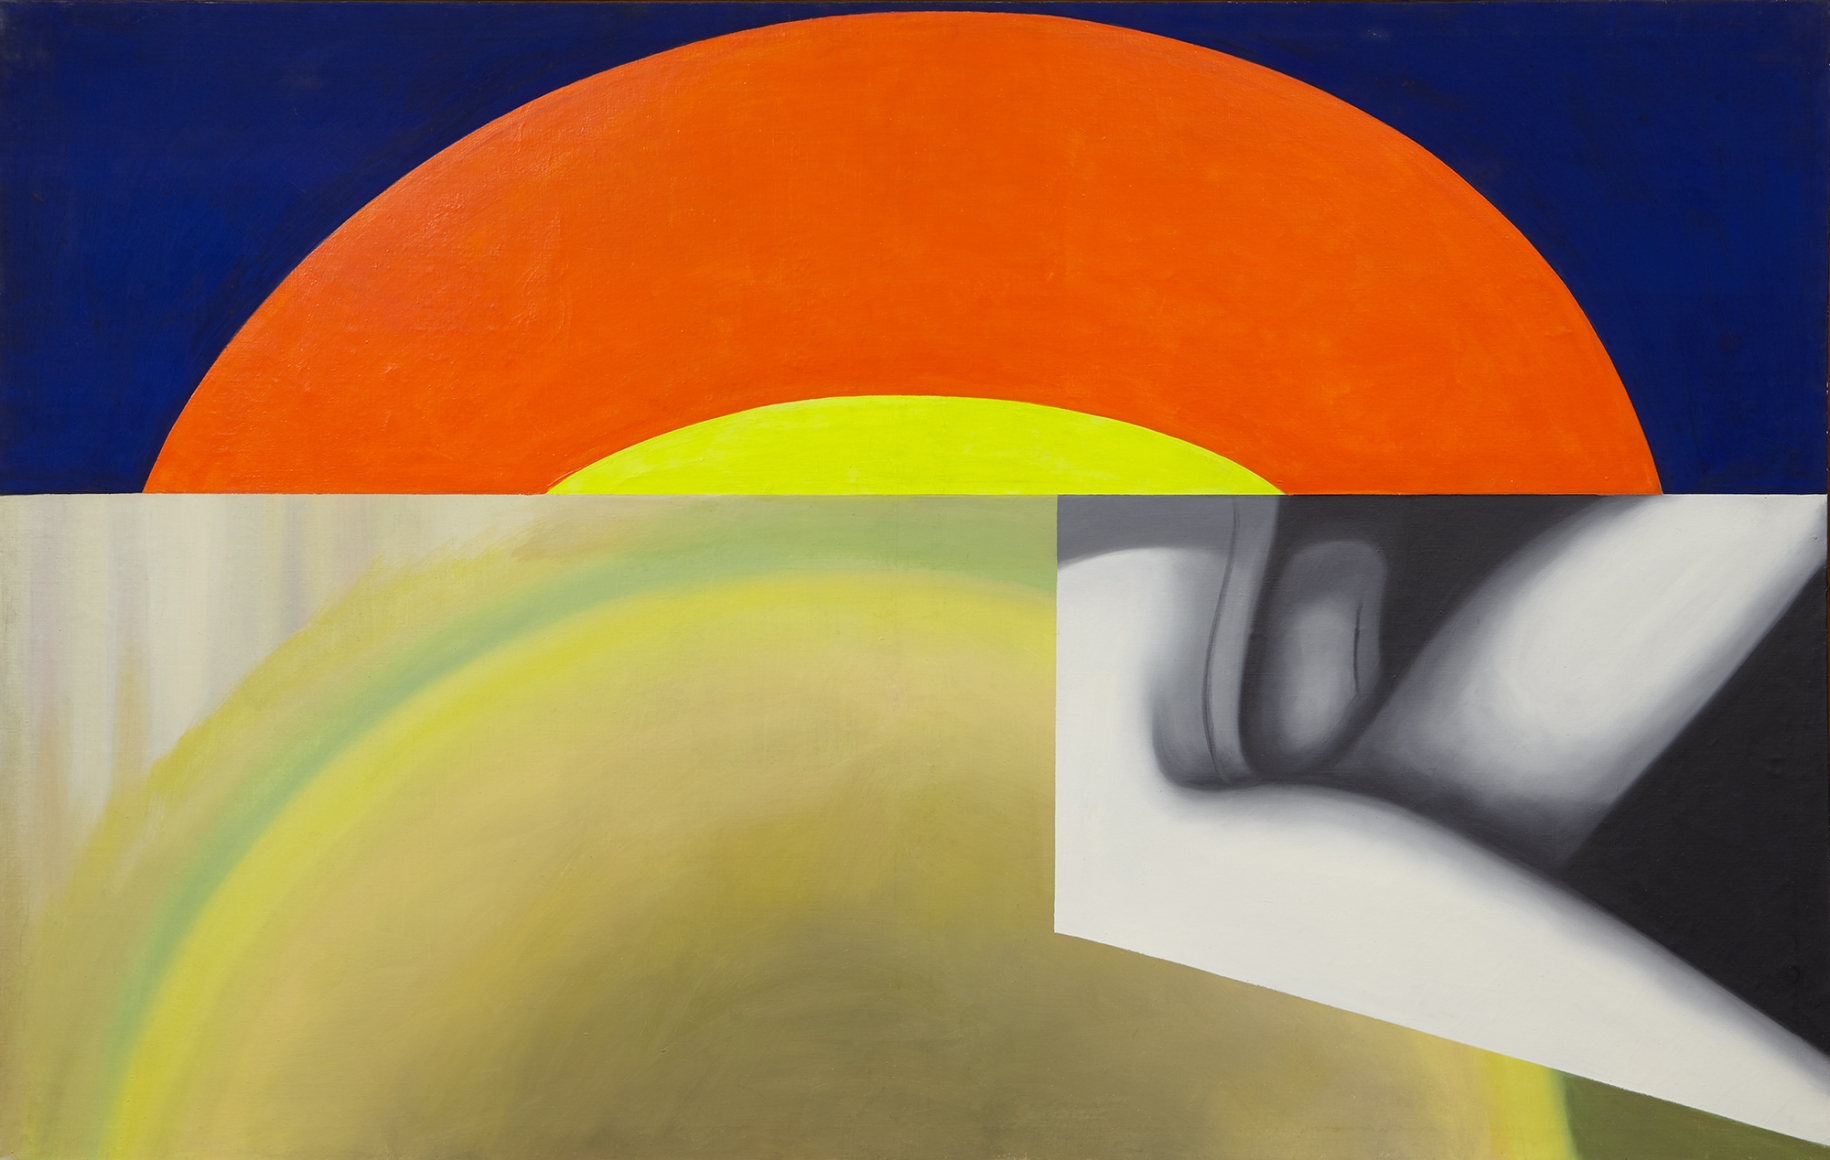 James Rosenquist: His American Life